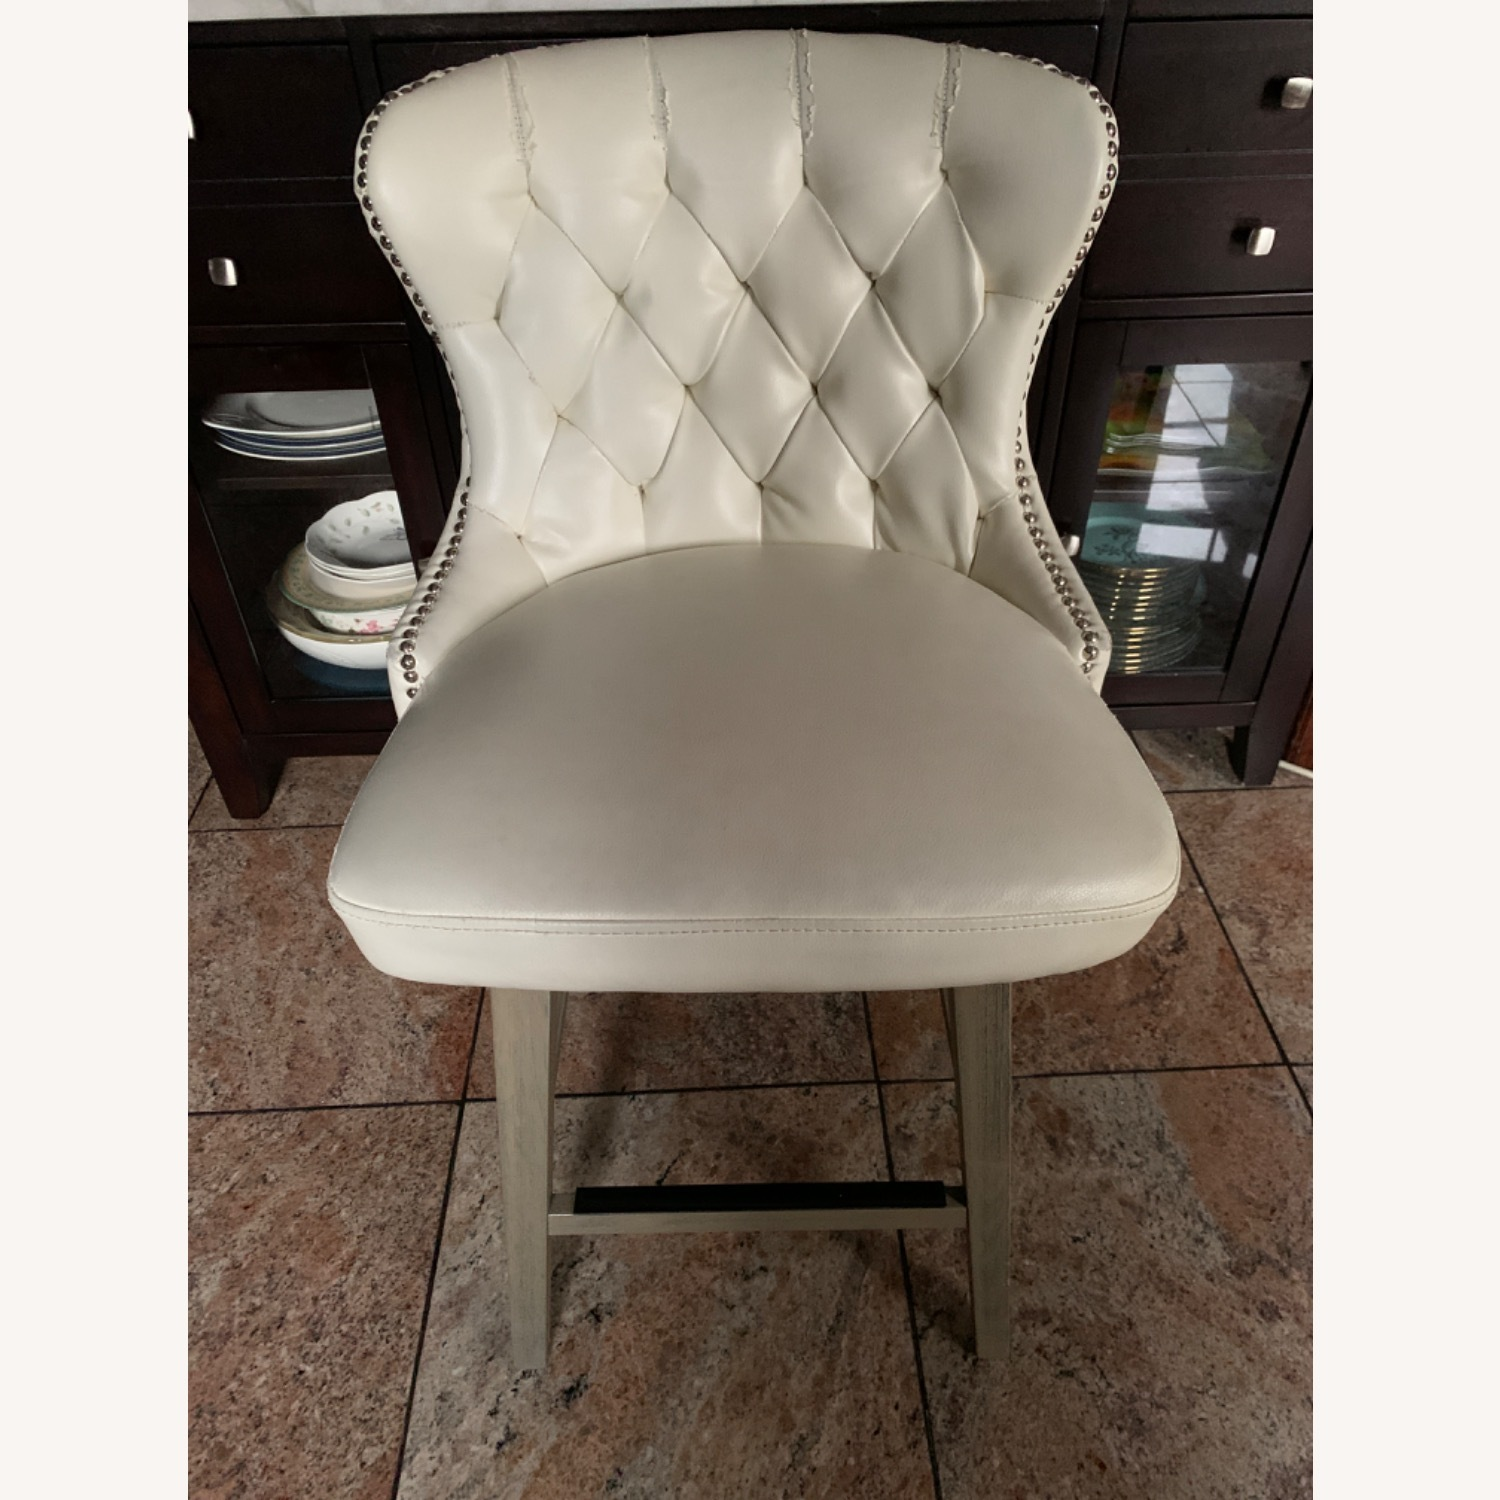 White Faux Leather Tufted Counter Chairs - image-1